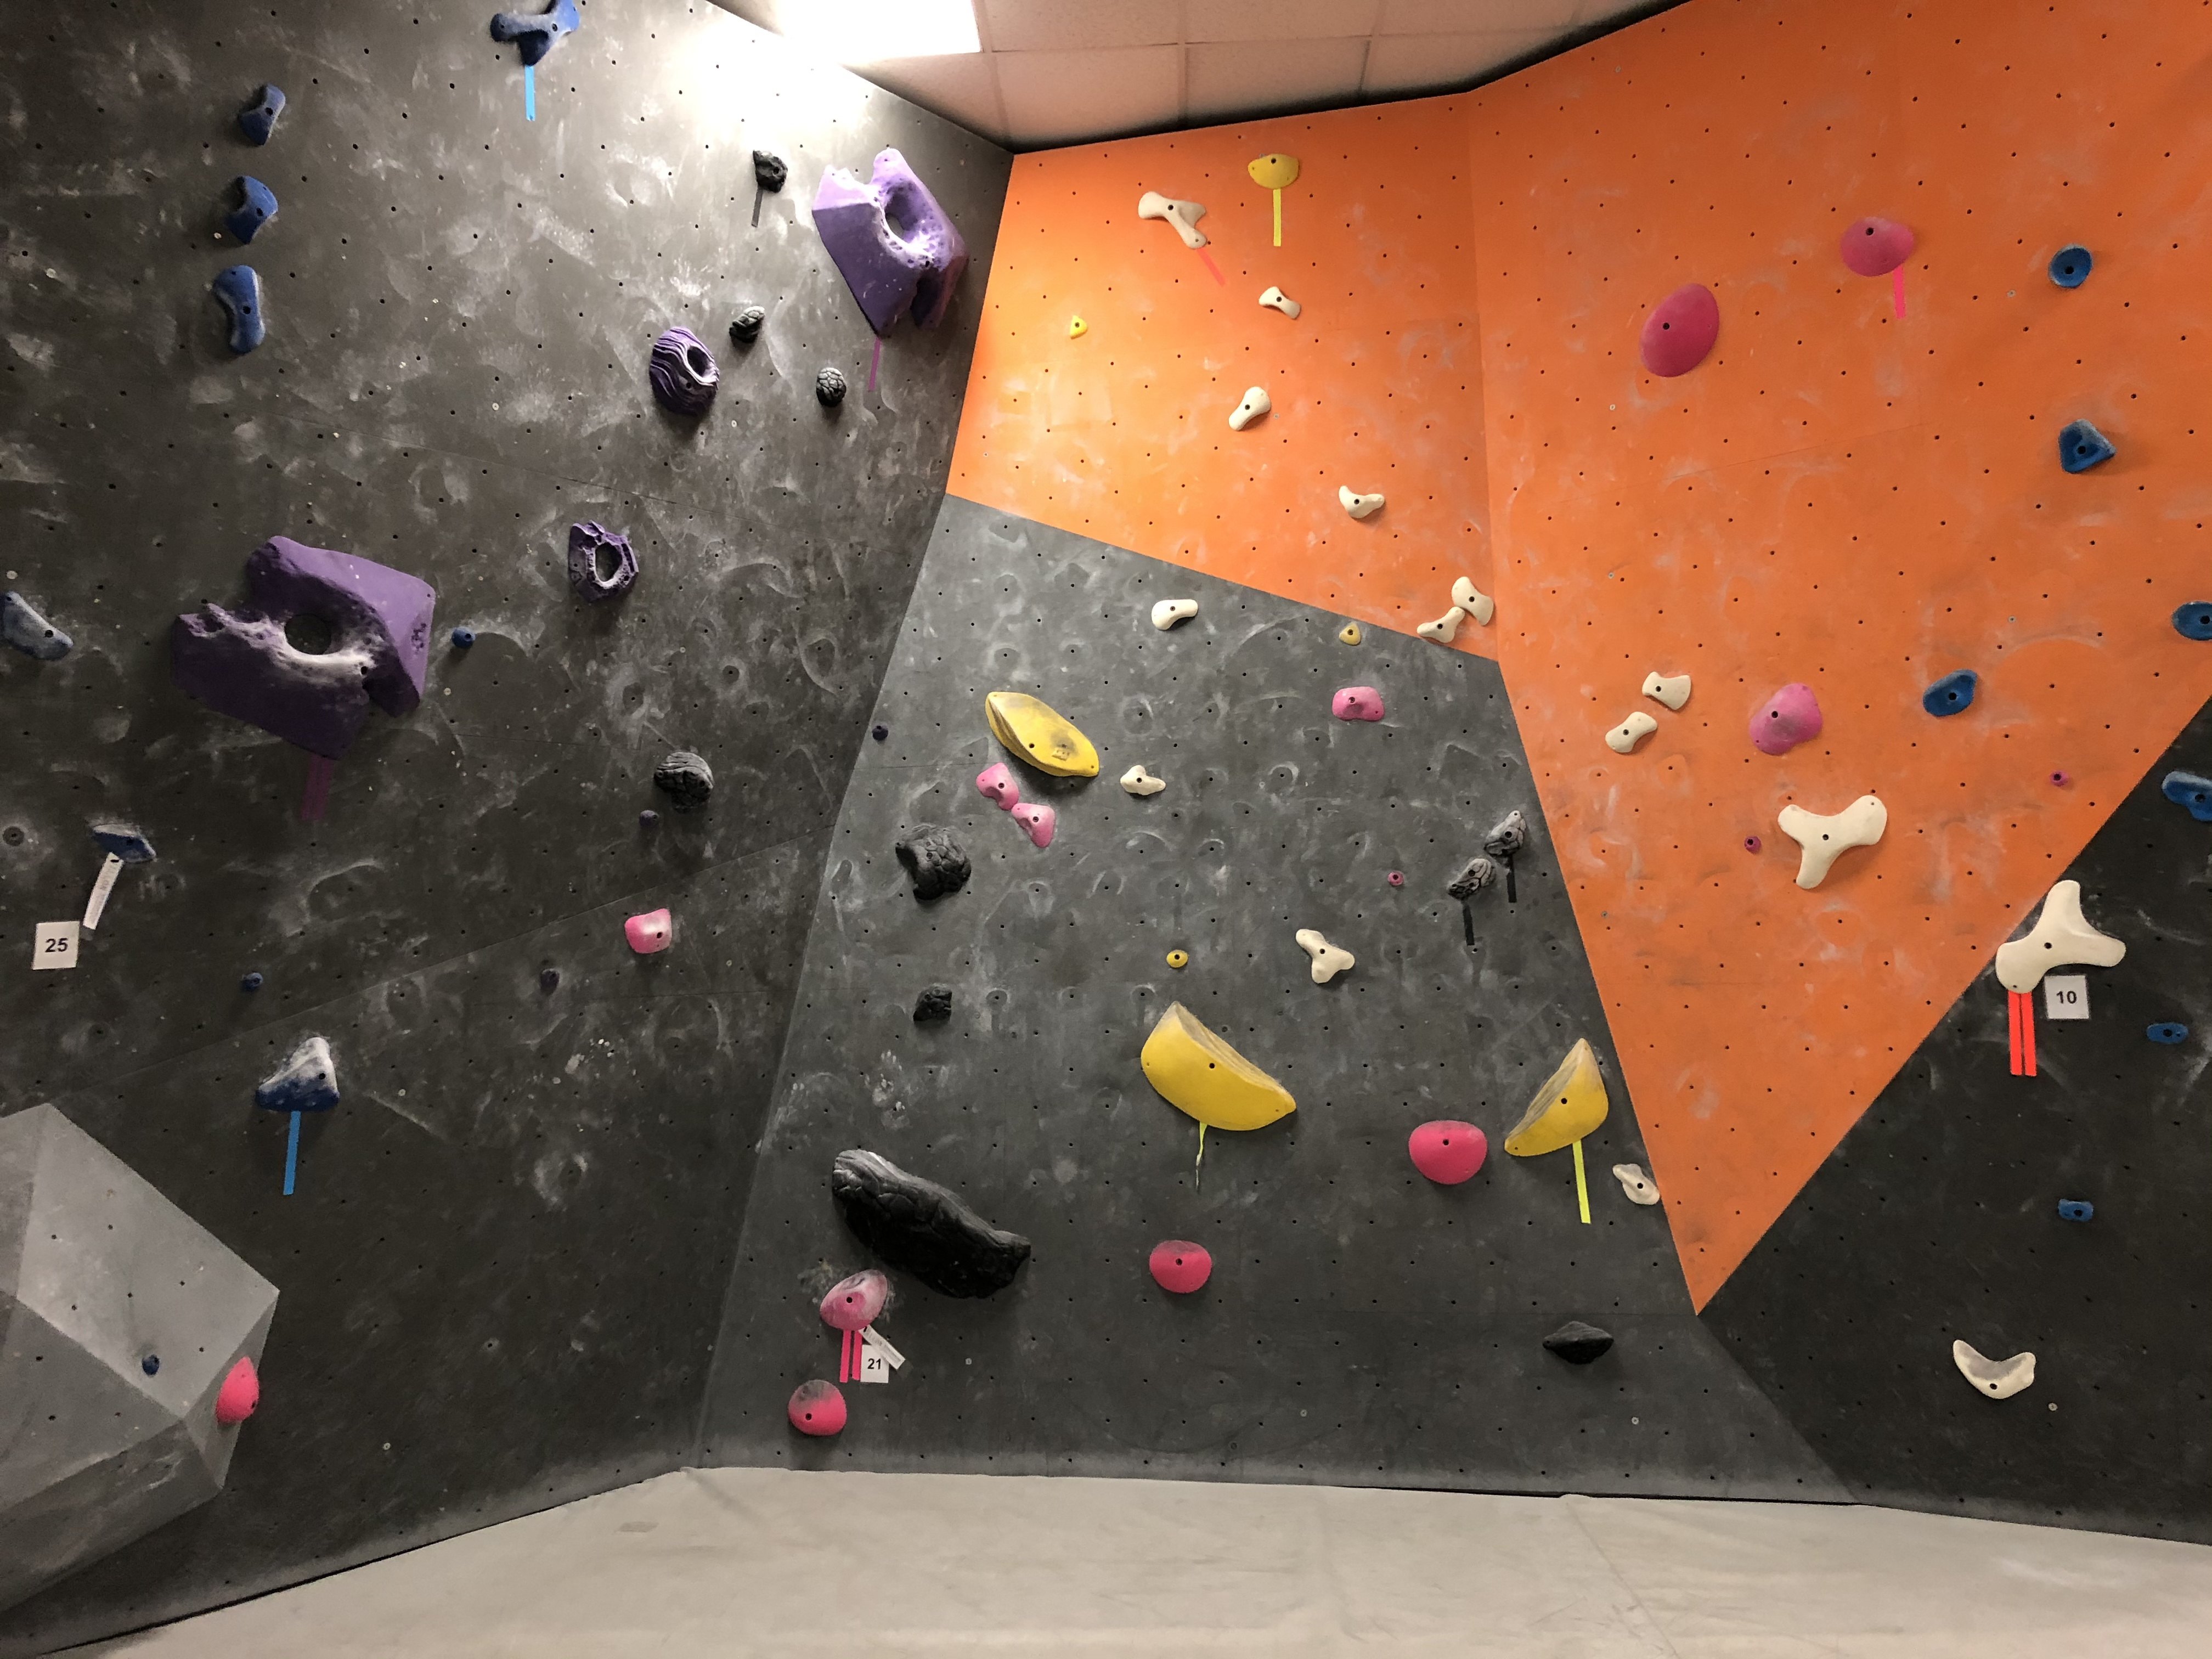 Locals only route number 21, a slab traverse route across three walls